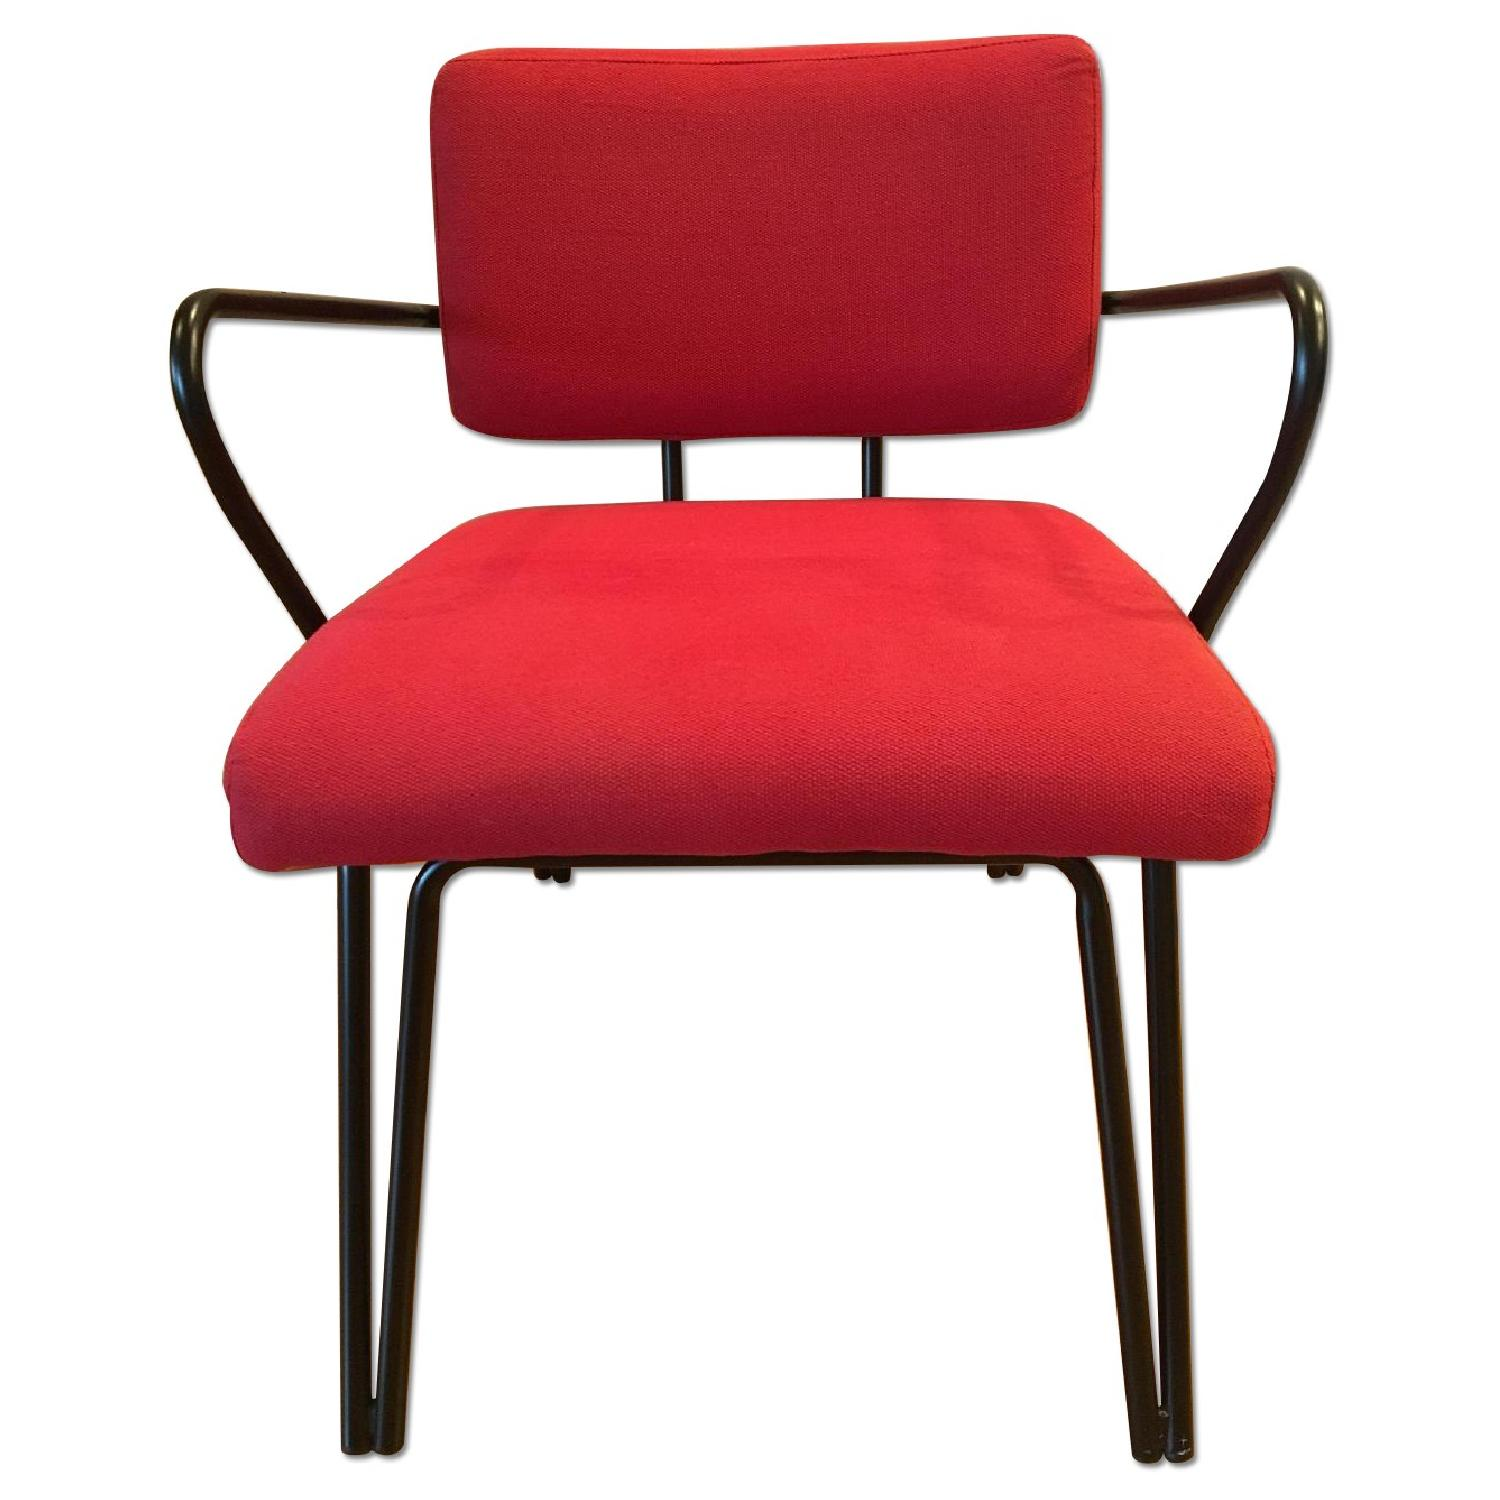 Red Upholstery Accent Chair - image-0